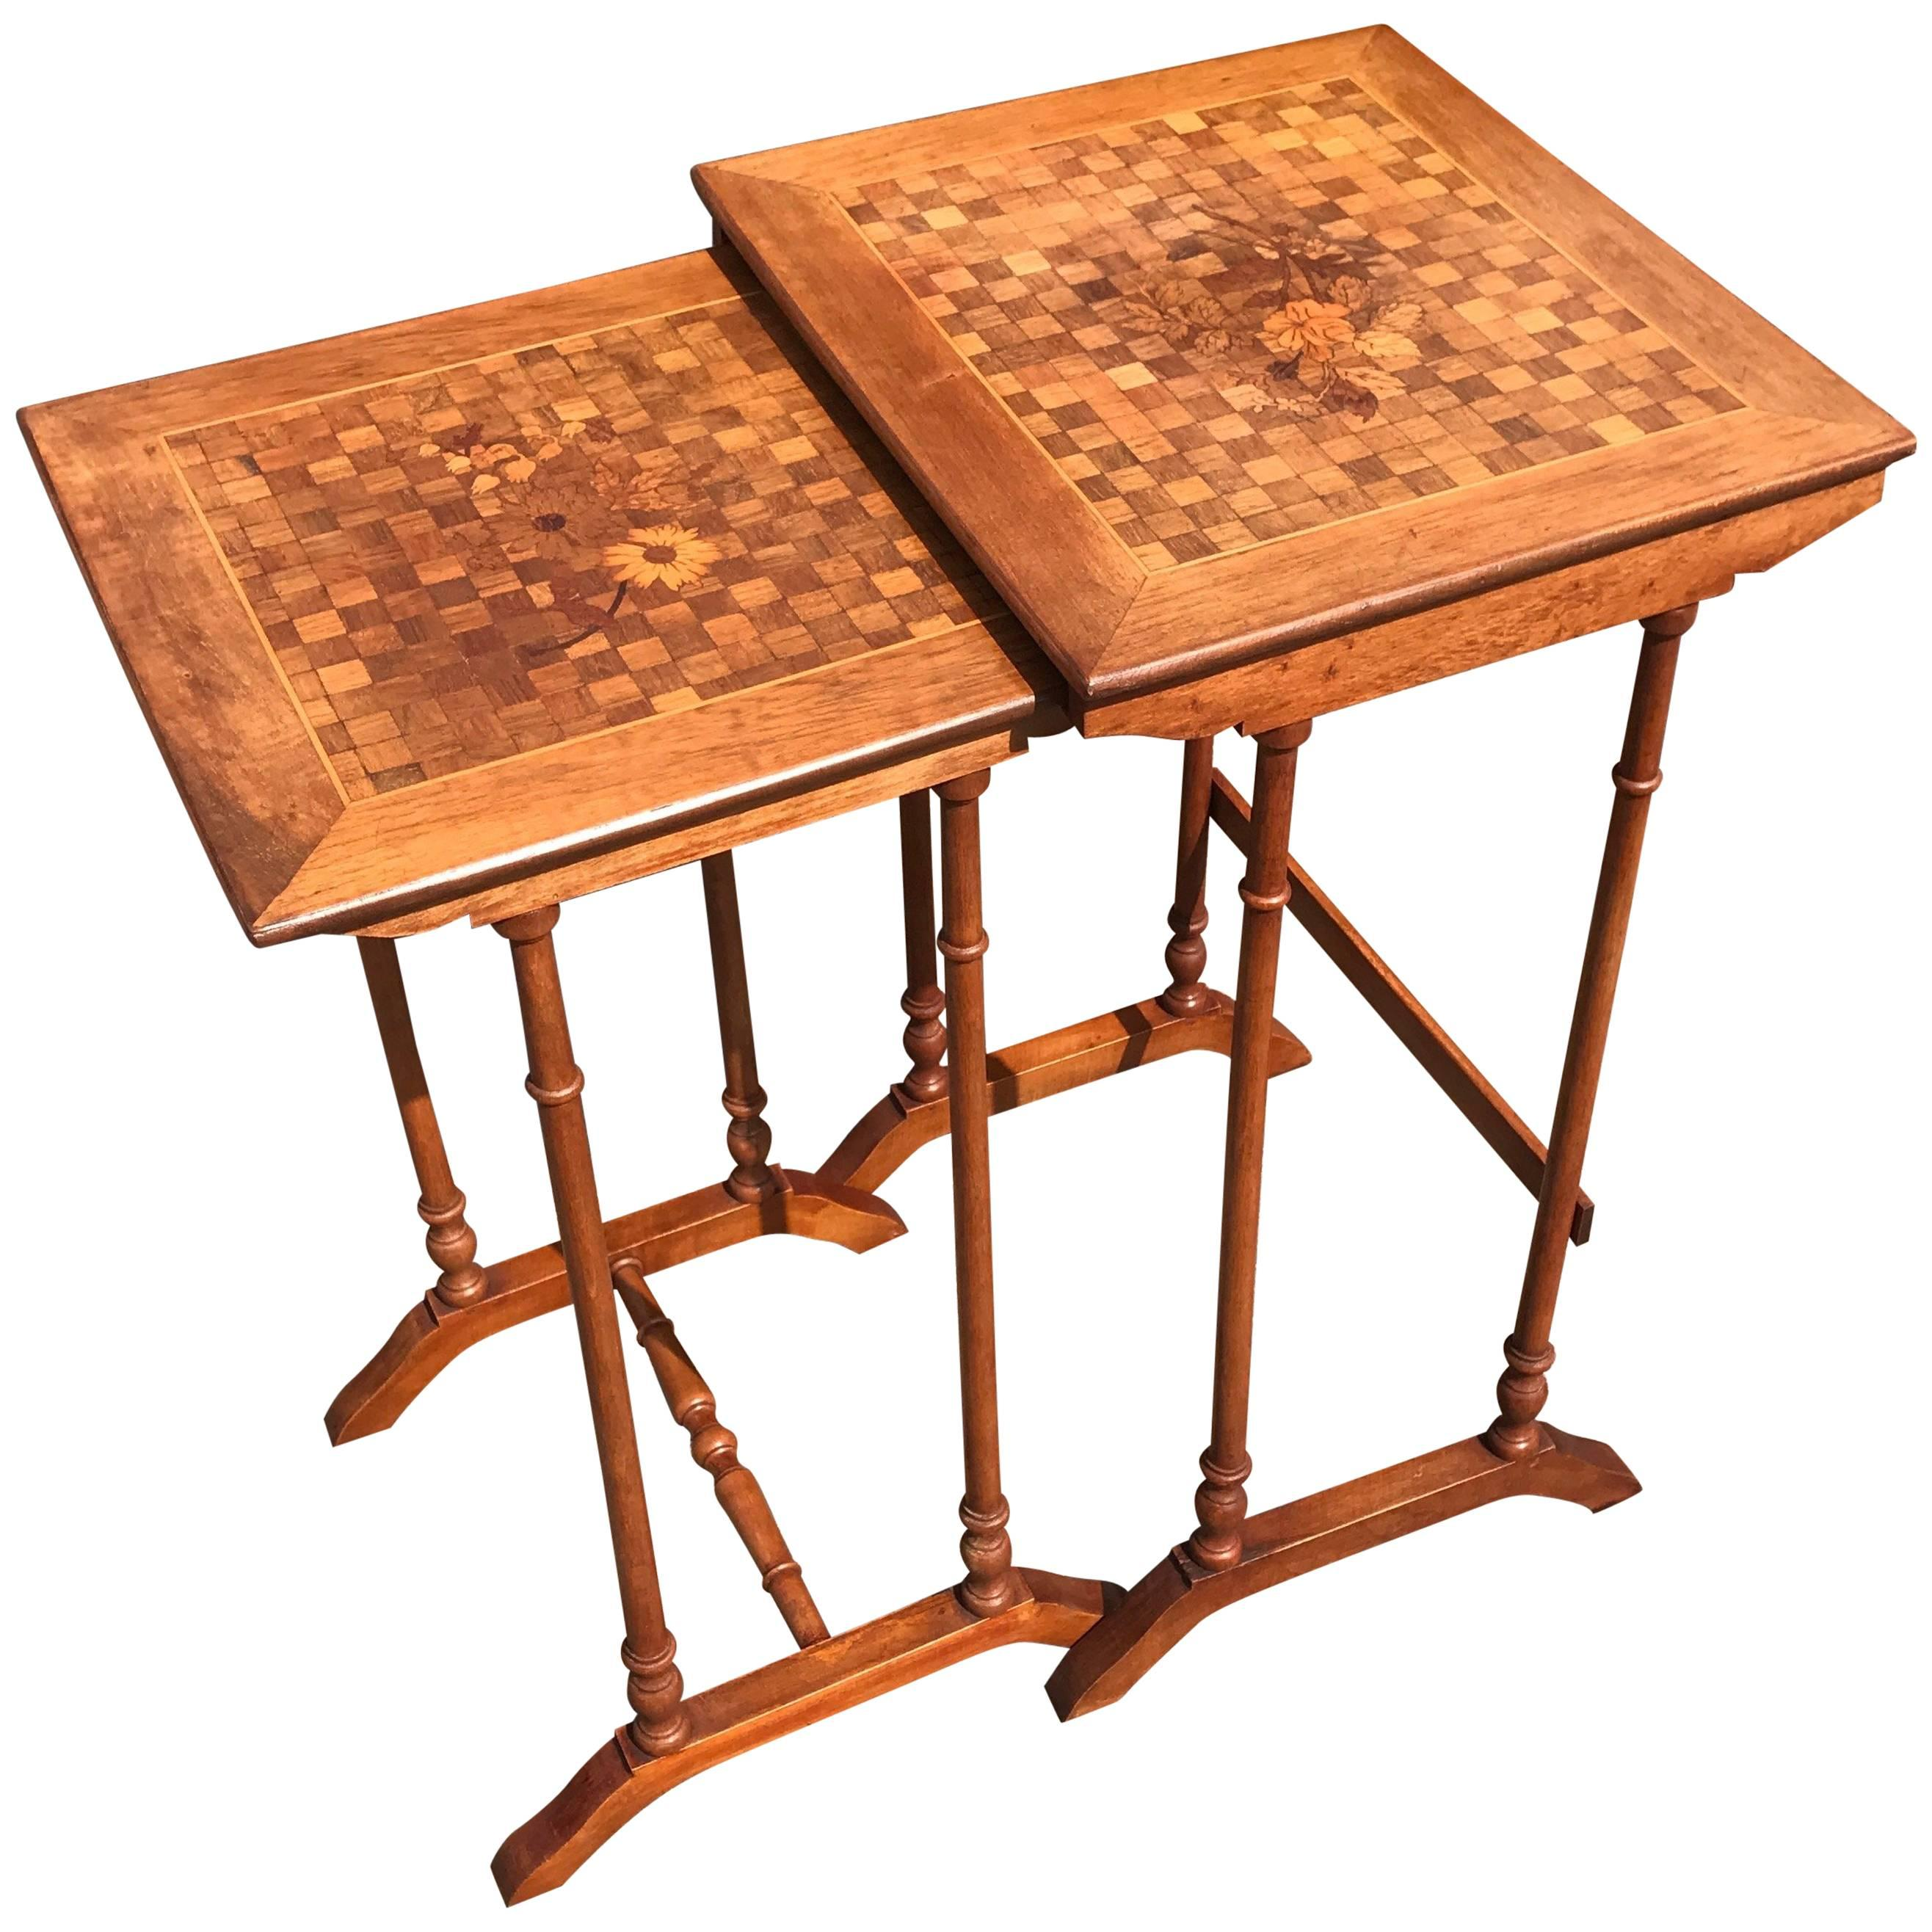 Art Nouveau Era Nest of Marquetry Tables with Inlaid Flowers in Gallé Style